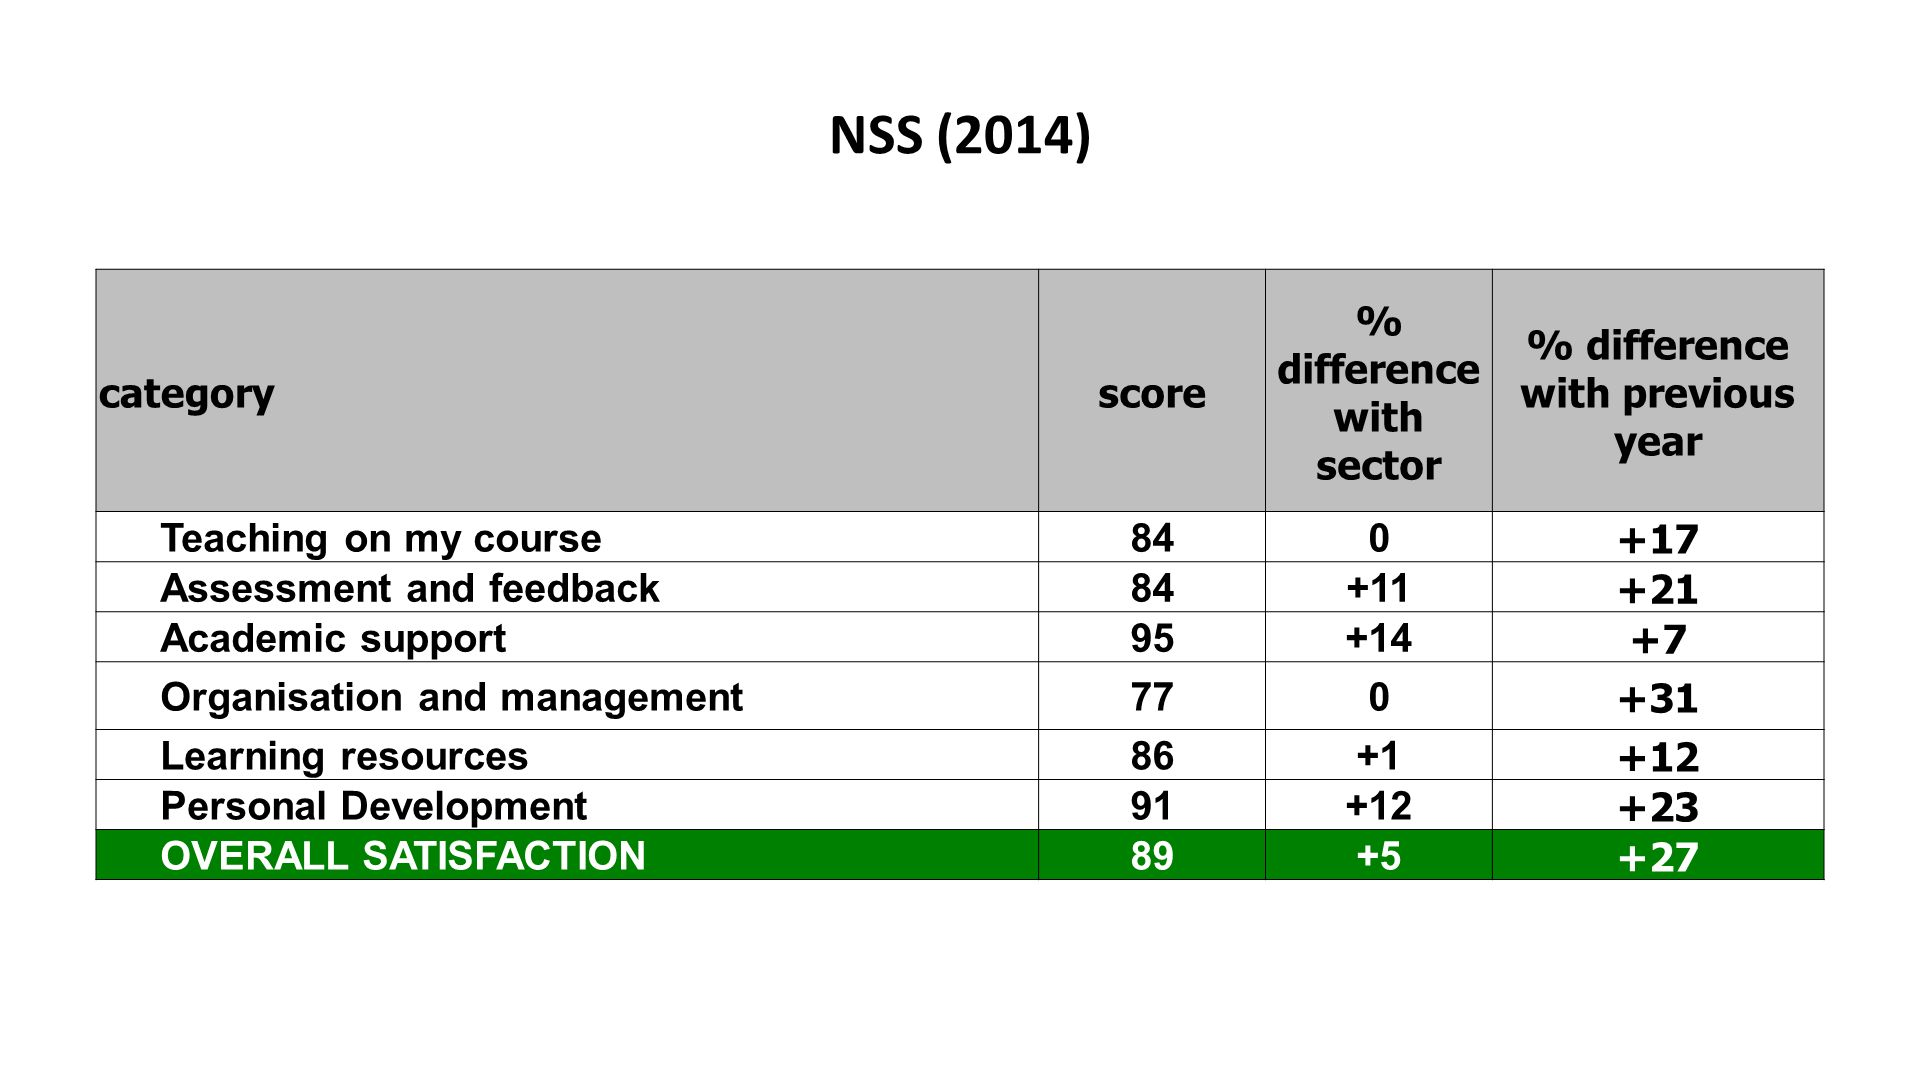 NSS (2014) categoryscore % difference with sector % difference with previous year Teaching on my course840 +17 Assessment and feedback84+11 +21 Academic support95+14 +7 Organisation and management770 +31 Learning resources86+1 +12 Personal Development91+12 +23 OVERALL SATISFACTION89+5 +27